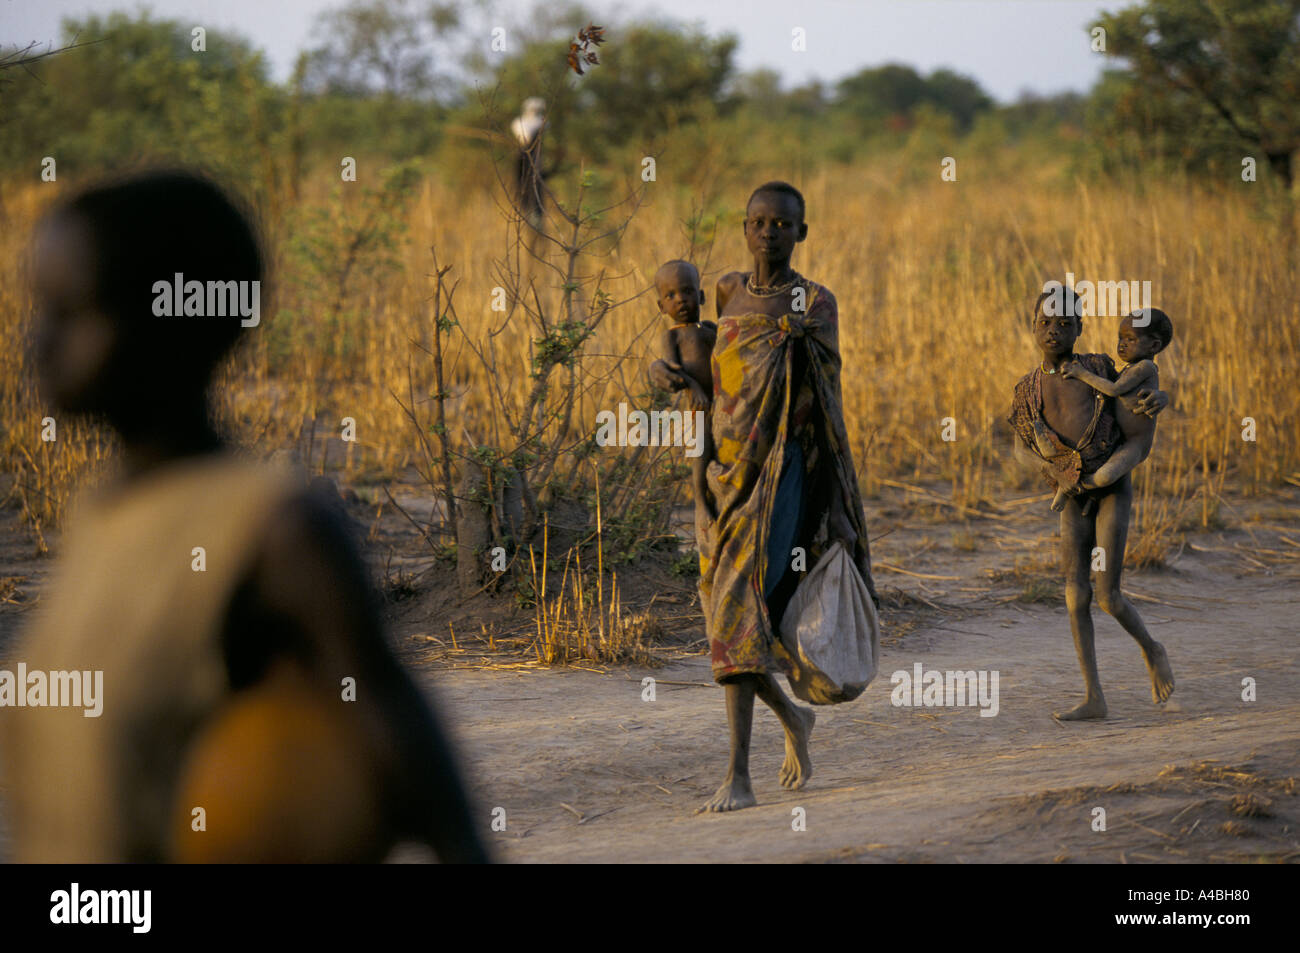 southern sudan ageip village malnourished family mother carrying children walking on road - Stock Image